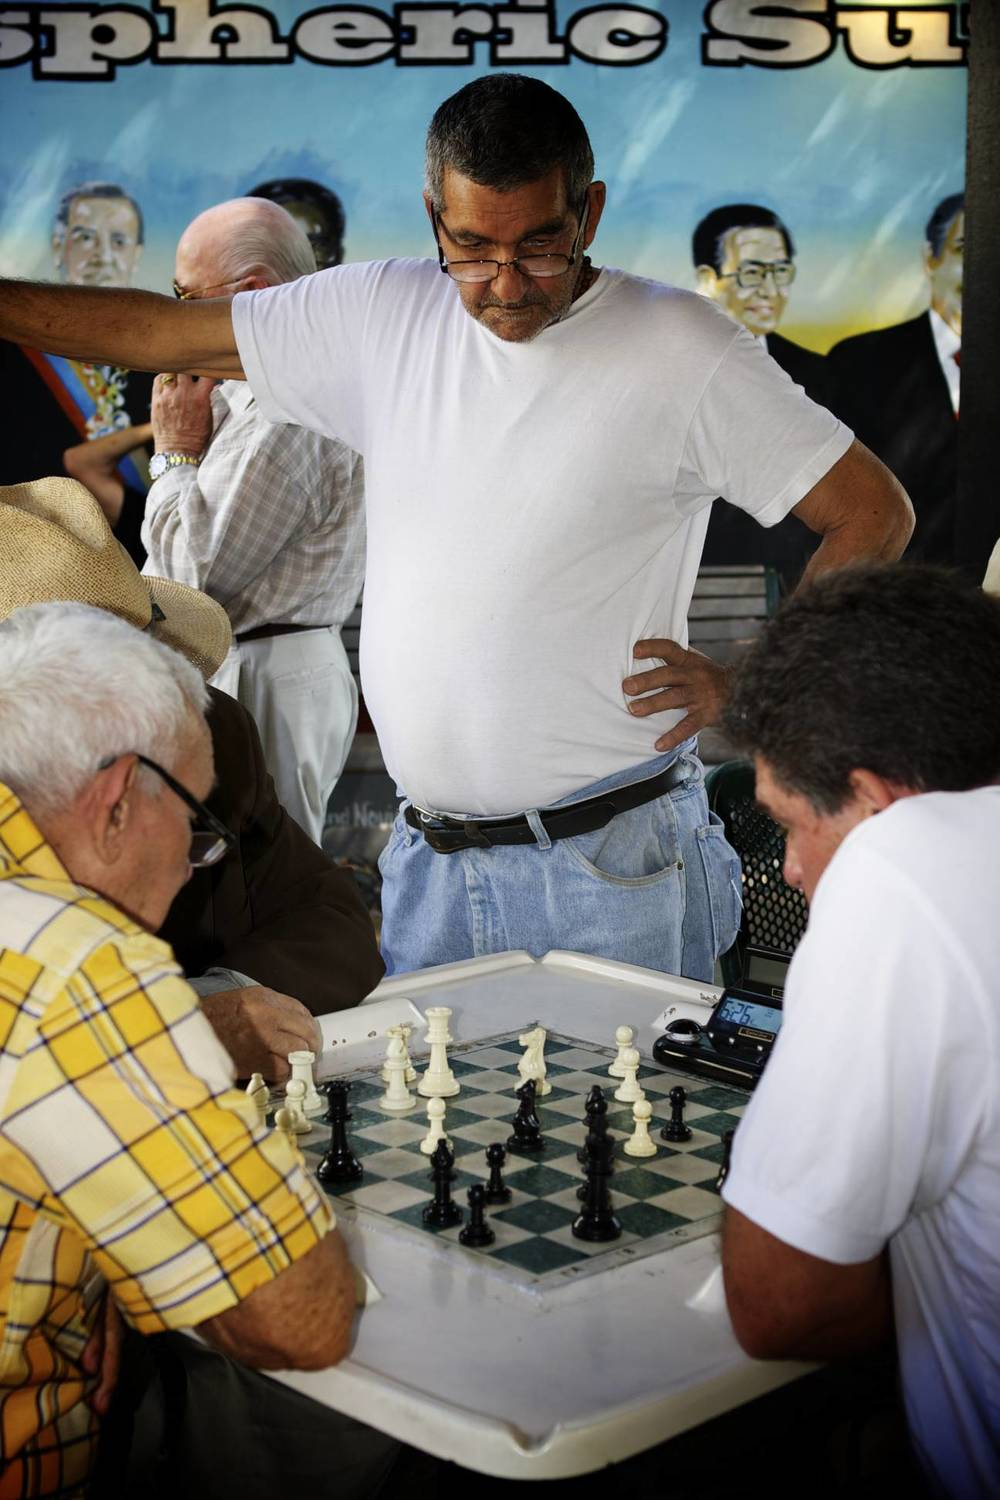 Calle Ocho: Chess Players in Little Havana, Miami